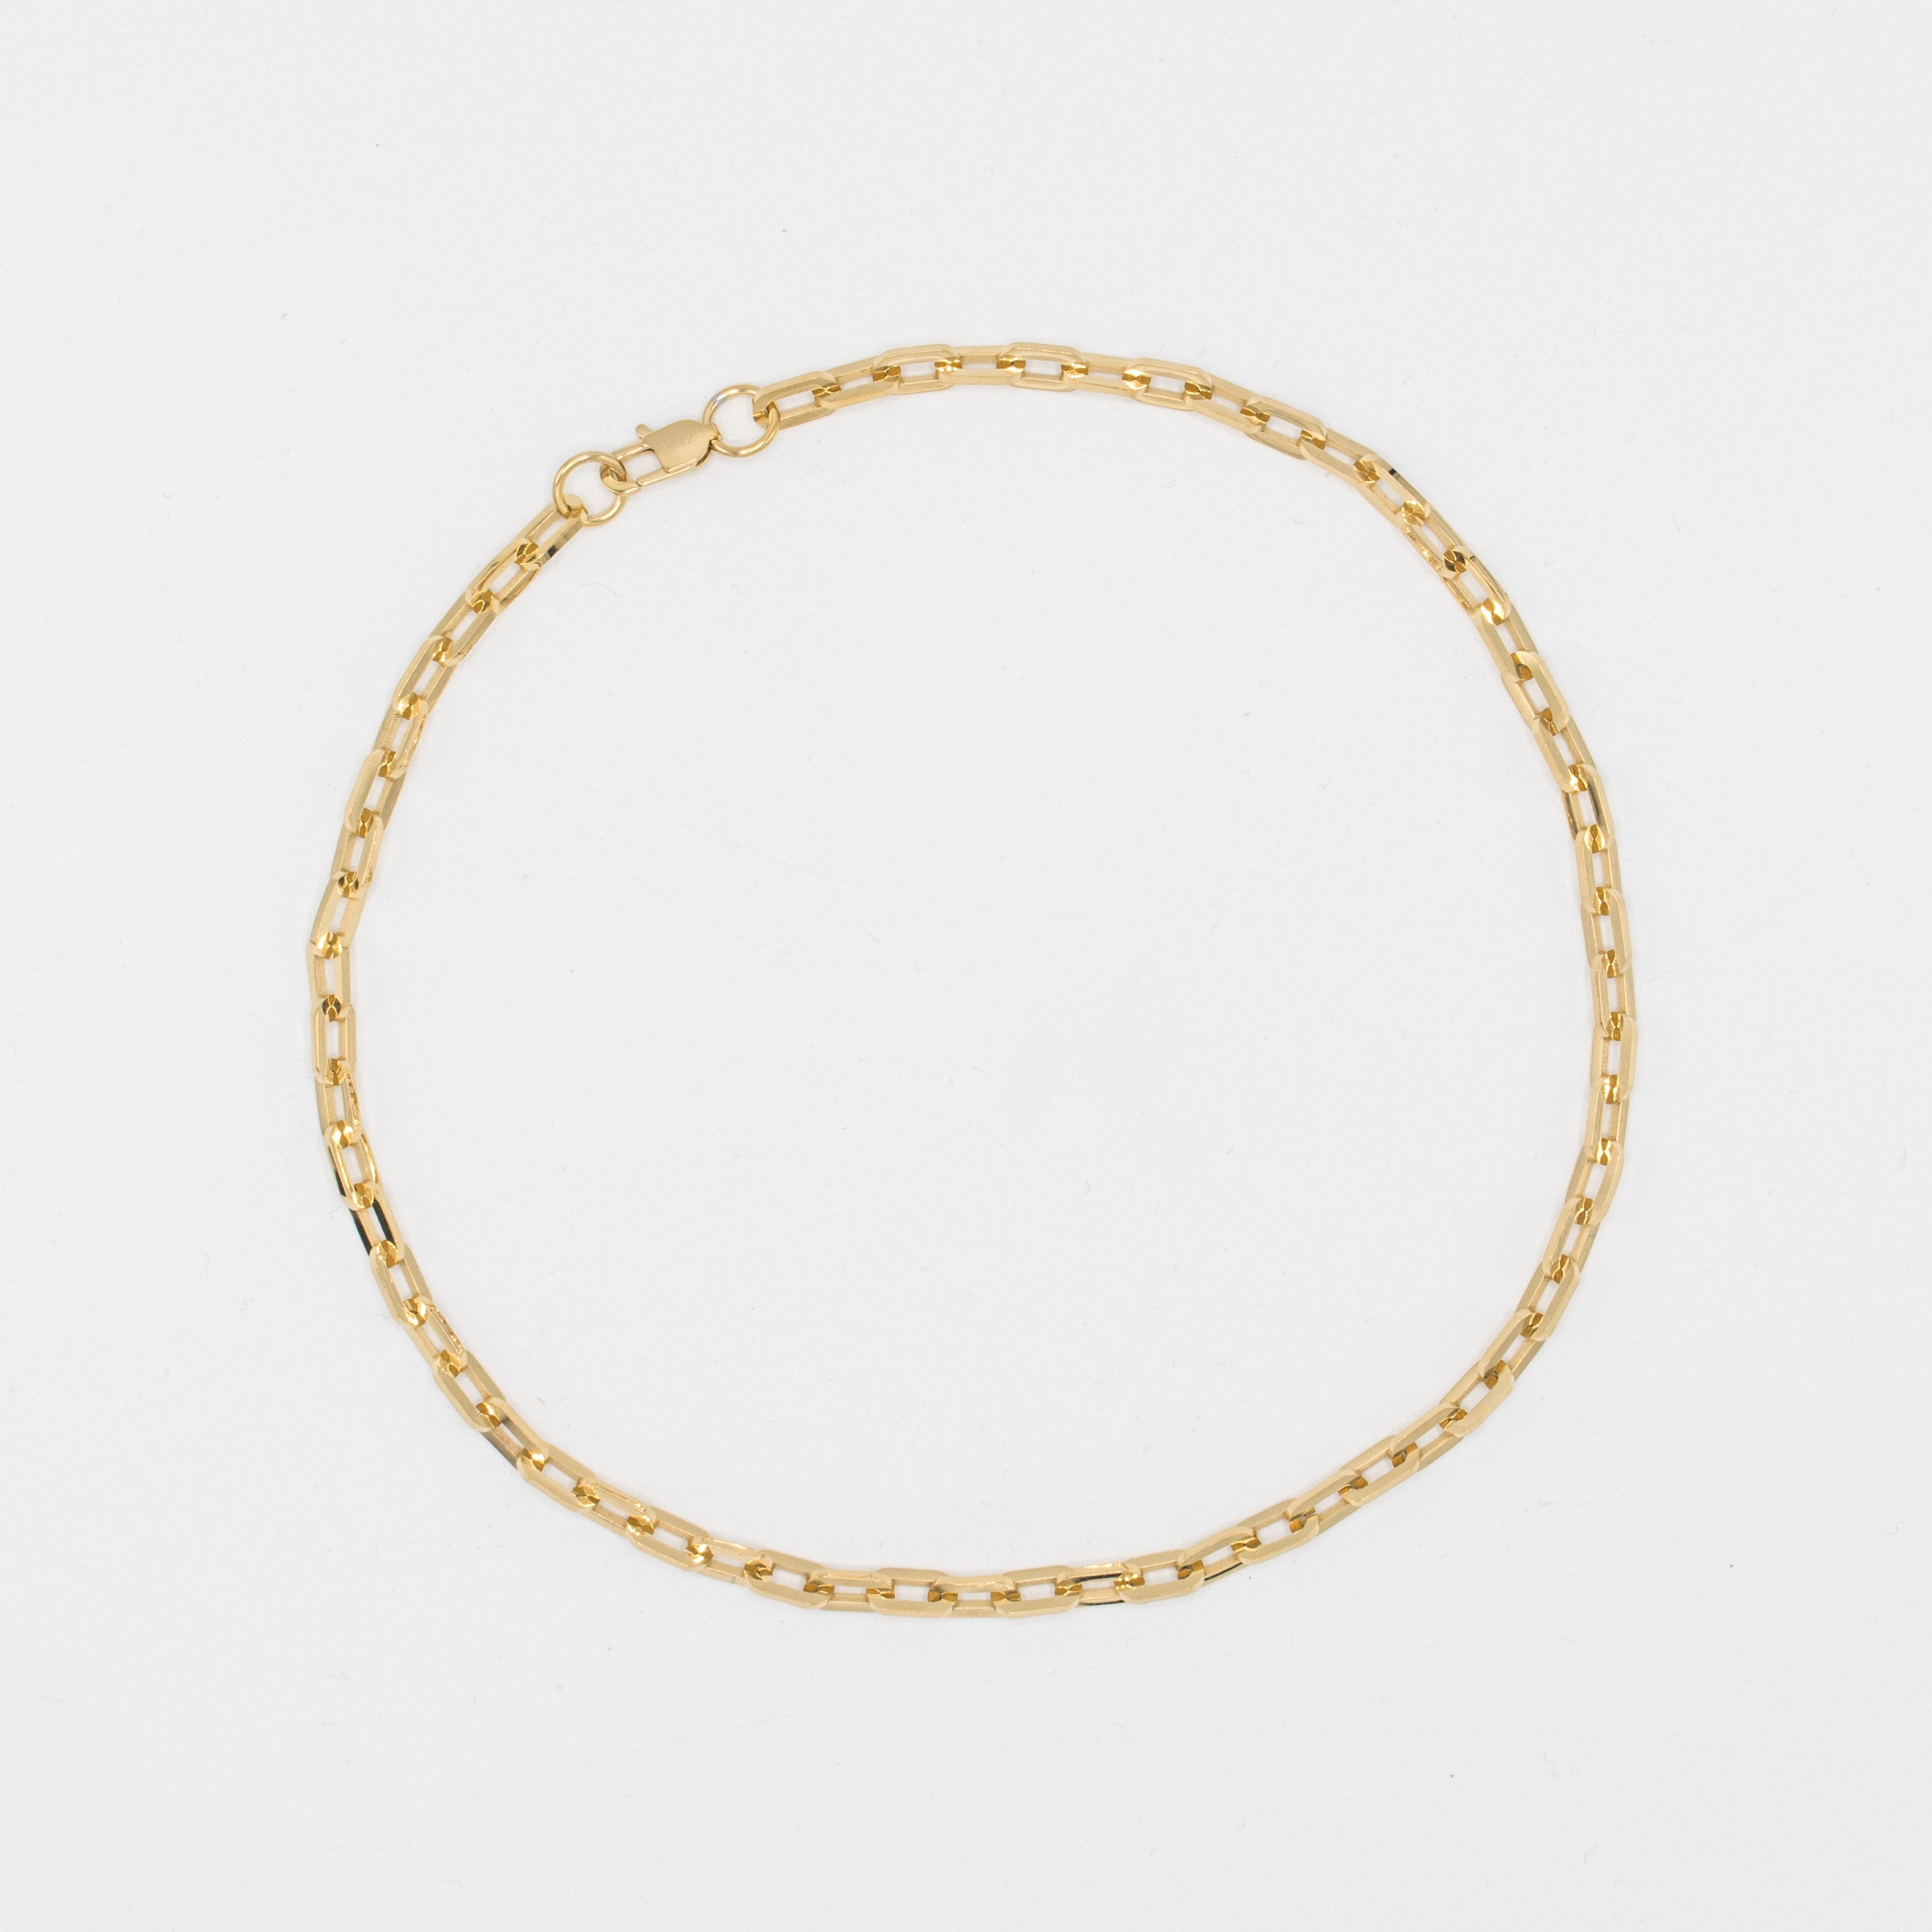 Flat Cable Chain 6mm